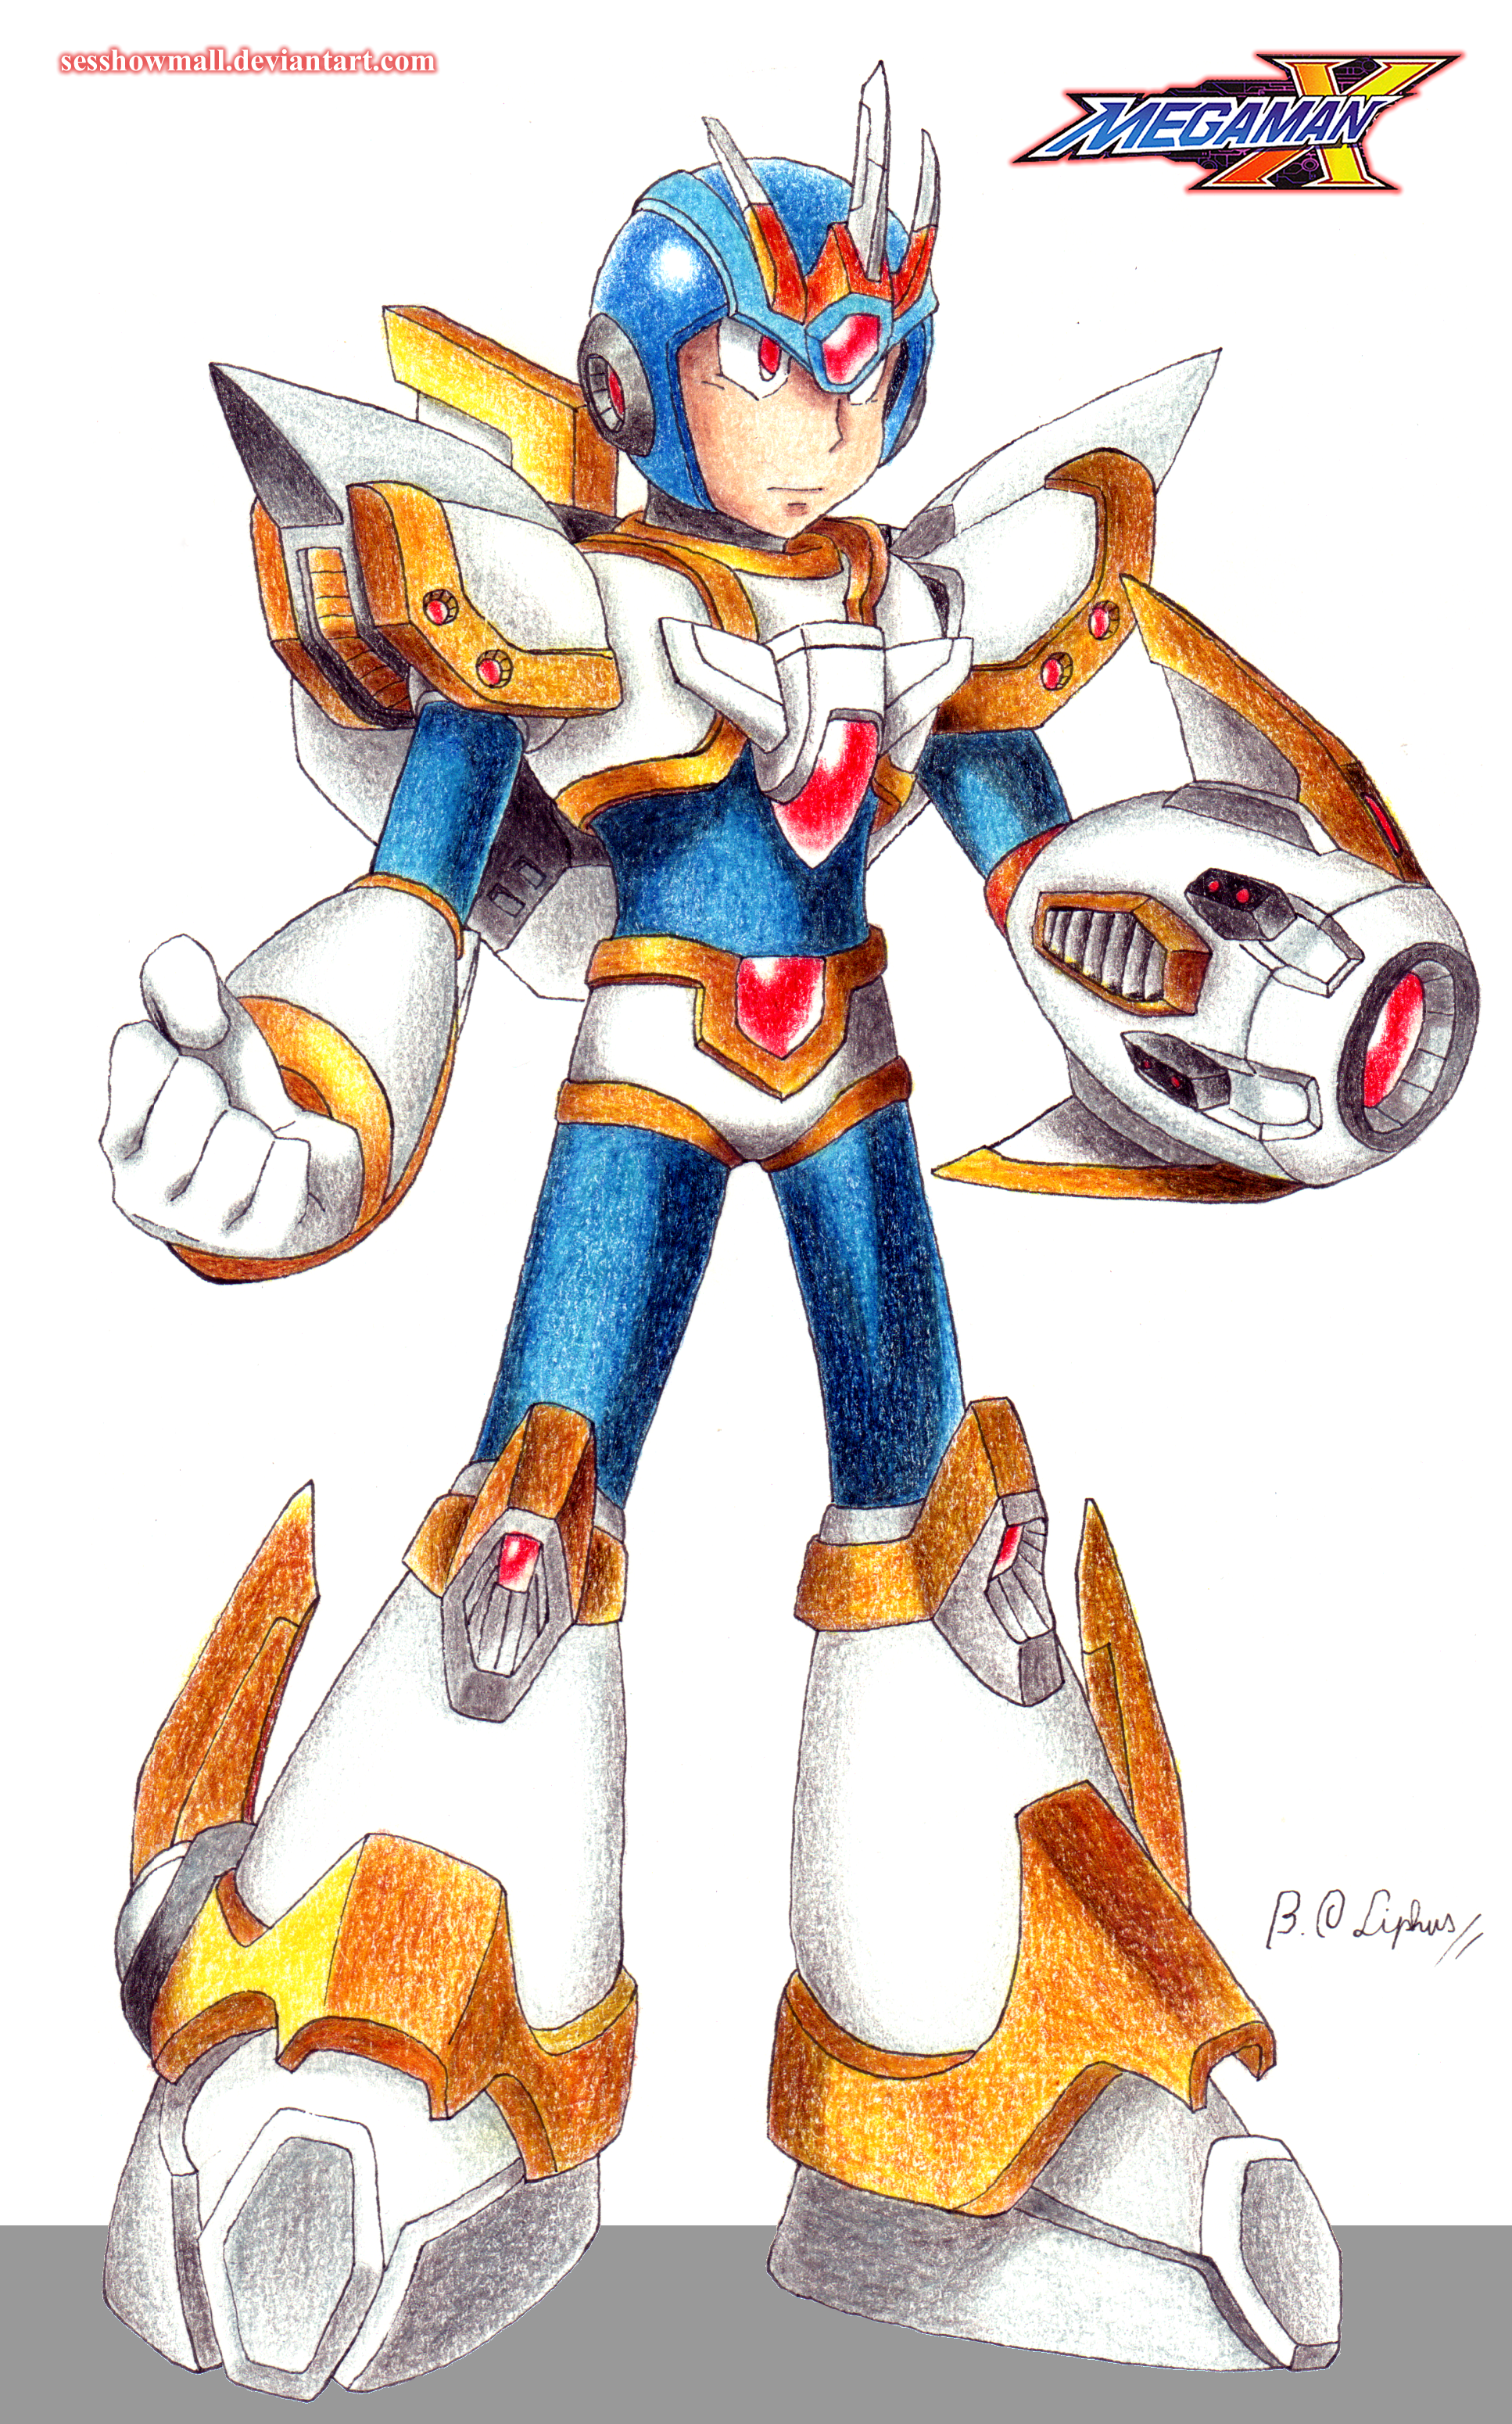 Copy X Mmx Style By Sesshowmall On Deviantart